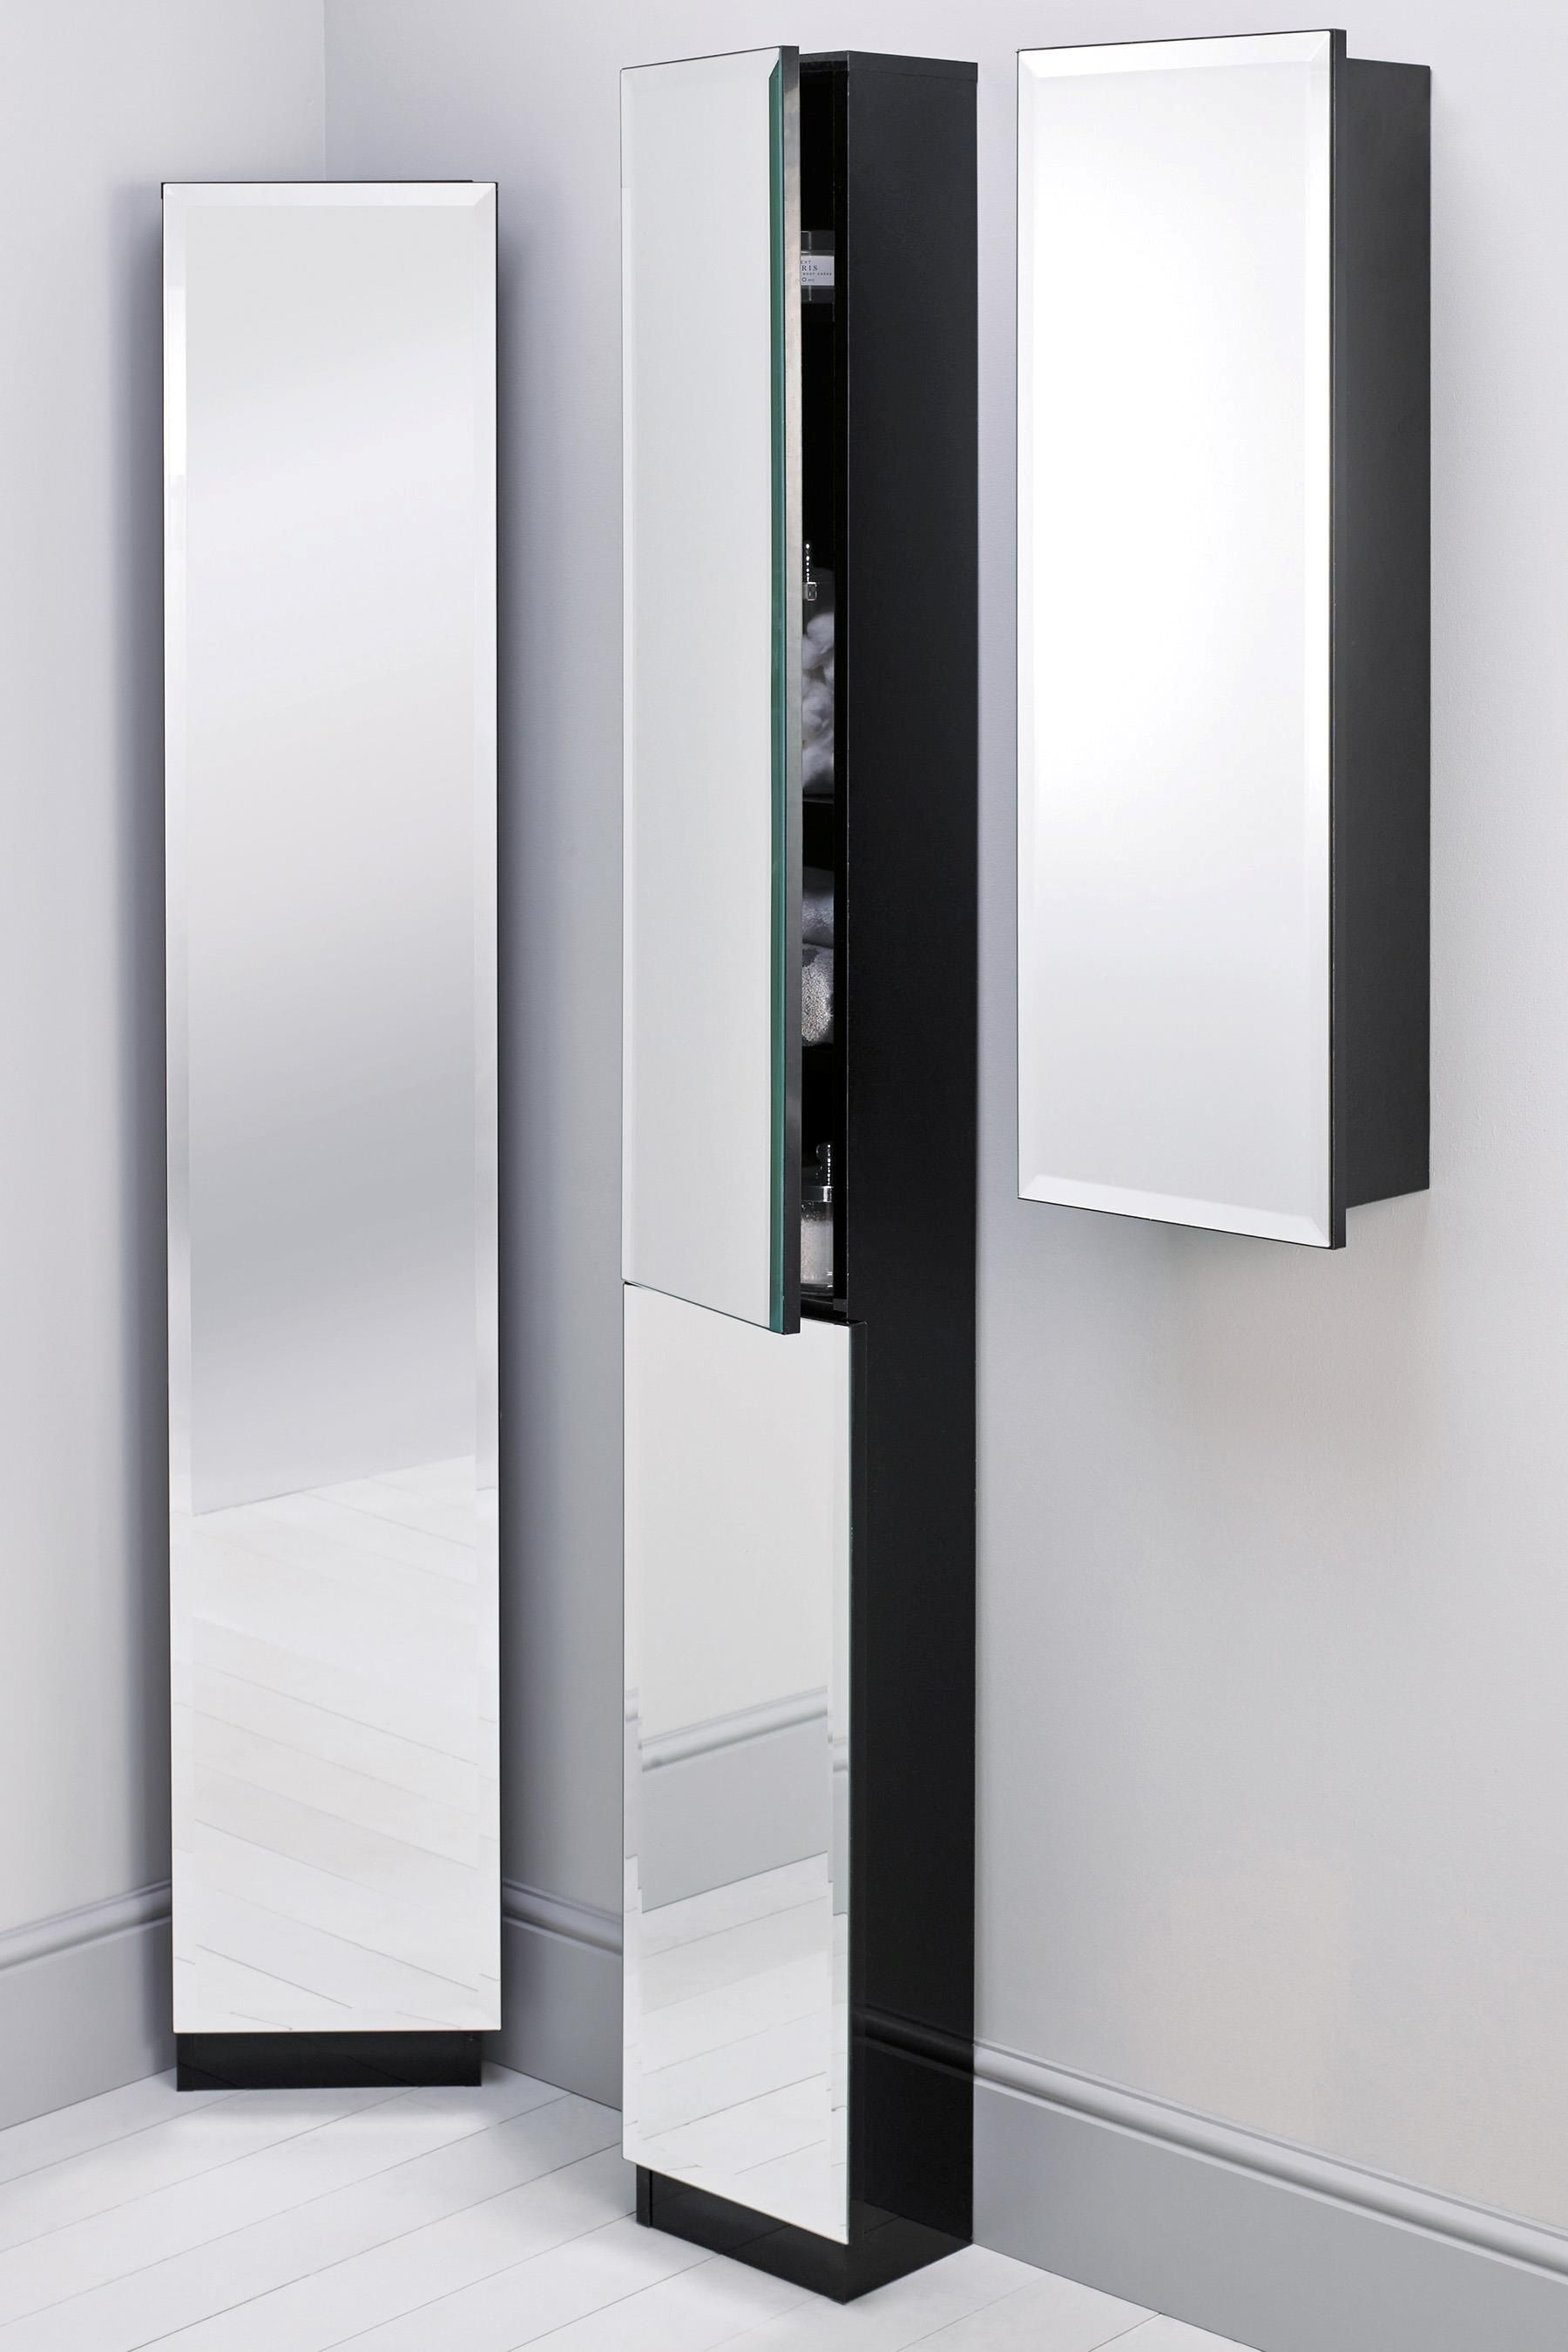 Tall Mirror Free Standing Bathroom Cabinet1800 X 2700